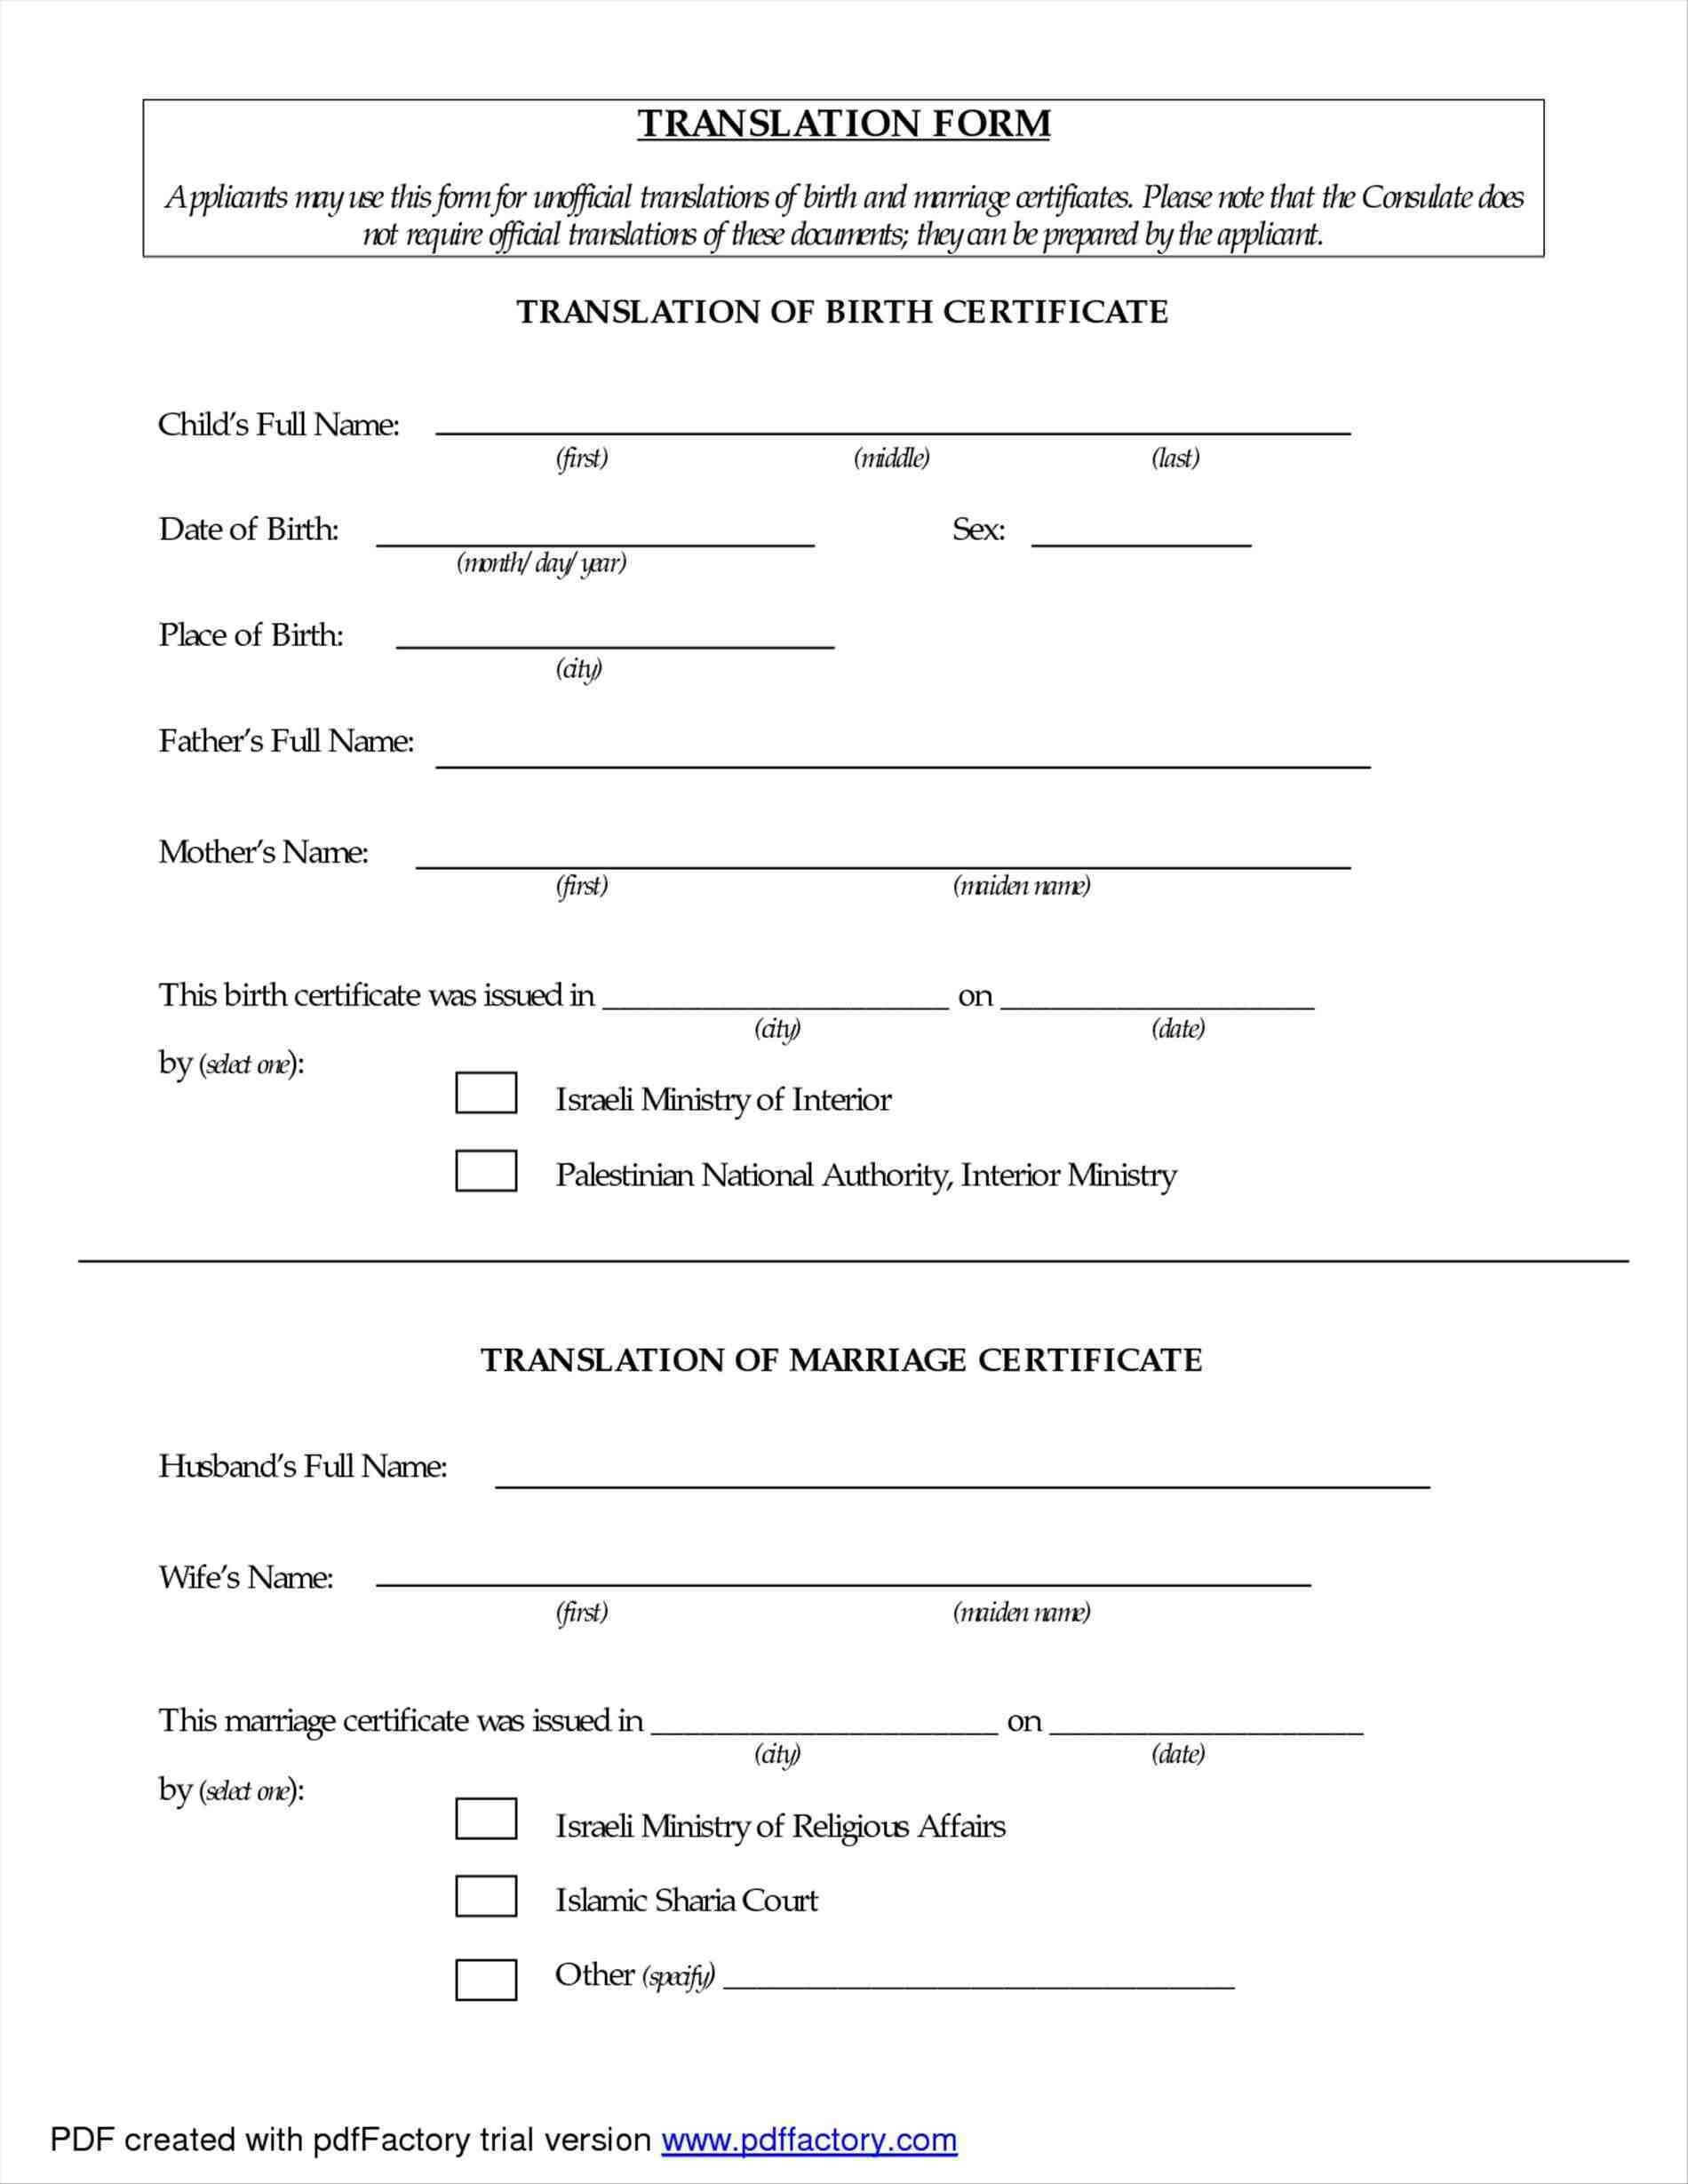 Mexican Marriage Certificate Template Brochure Templates Intended For Marriage Certificate Translation From Spanish To English Template